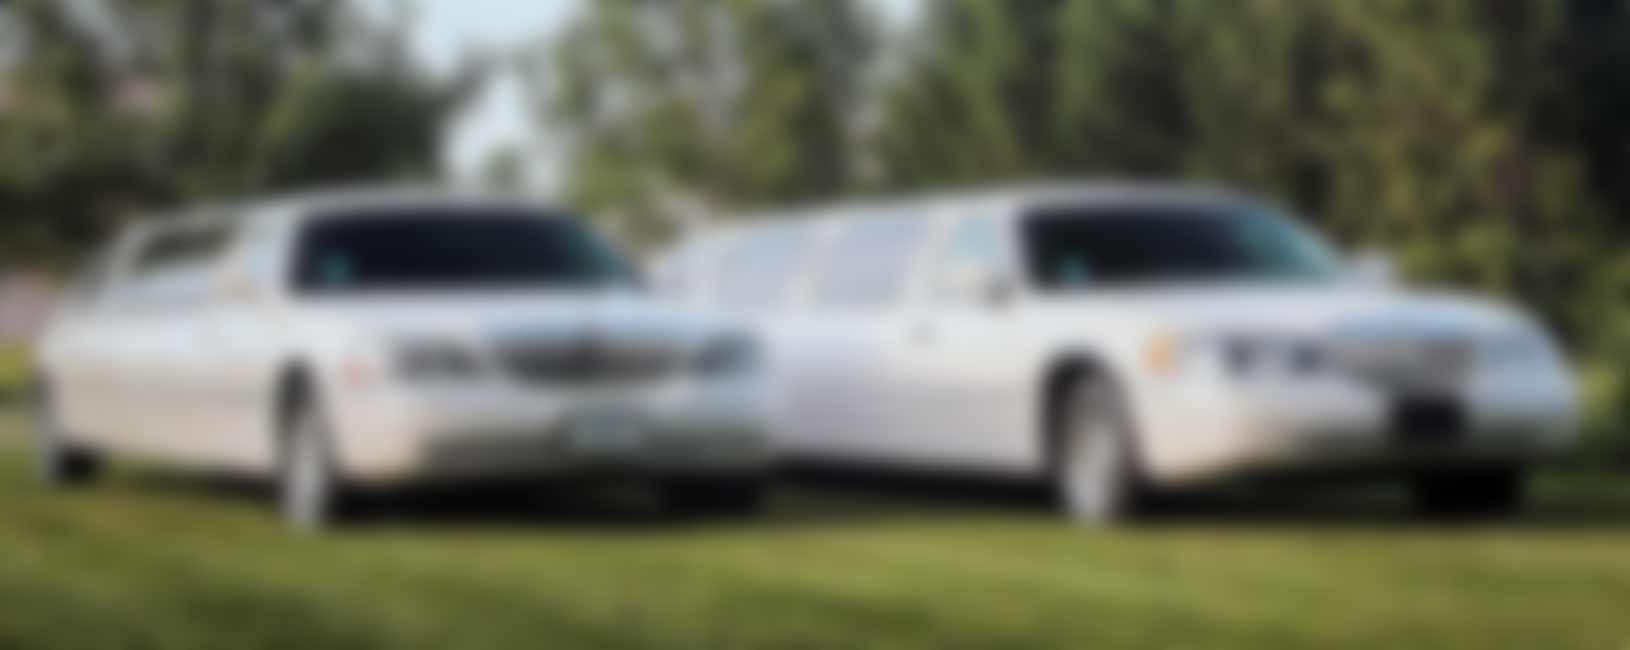 central-illinois-limousine-rental-services-blurred